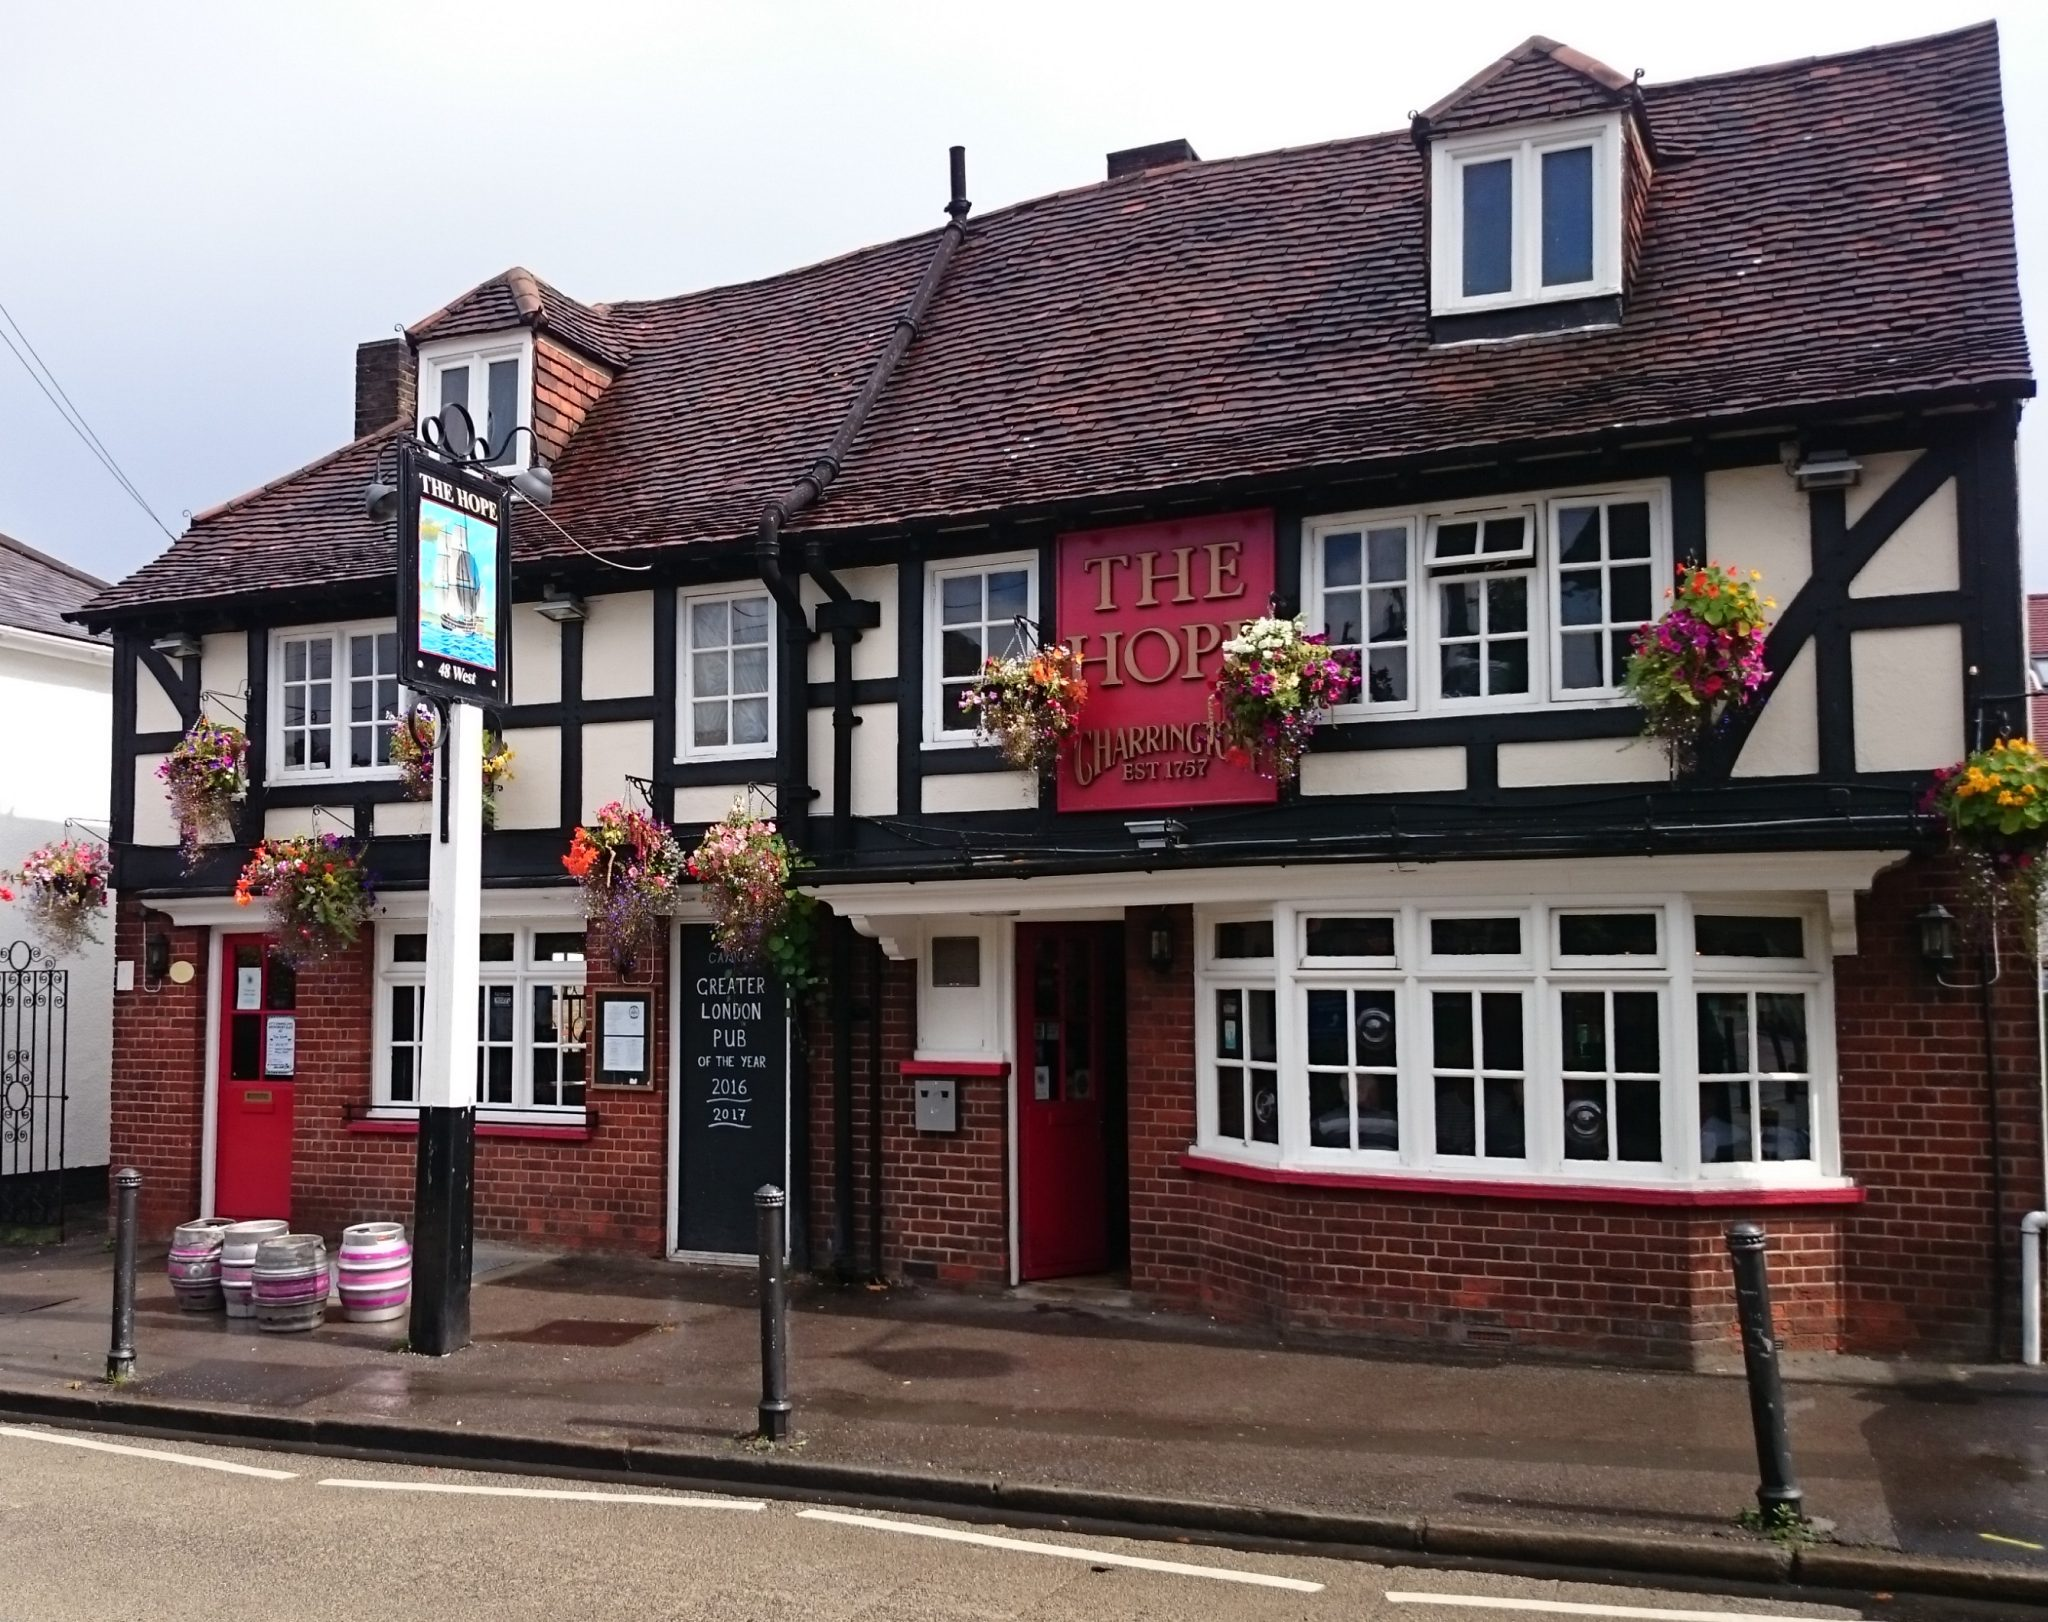 NINTCHDBPICT000515367376 - Best pubs in Britain for 2019 revealed in annual competition to find UK's top boozer